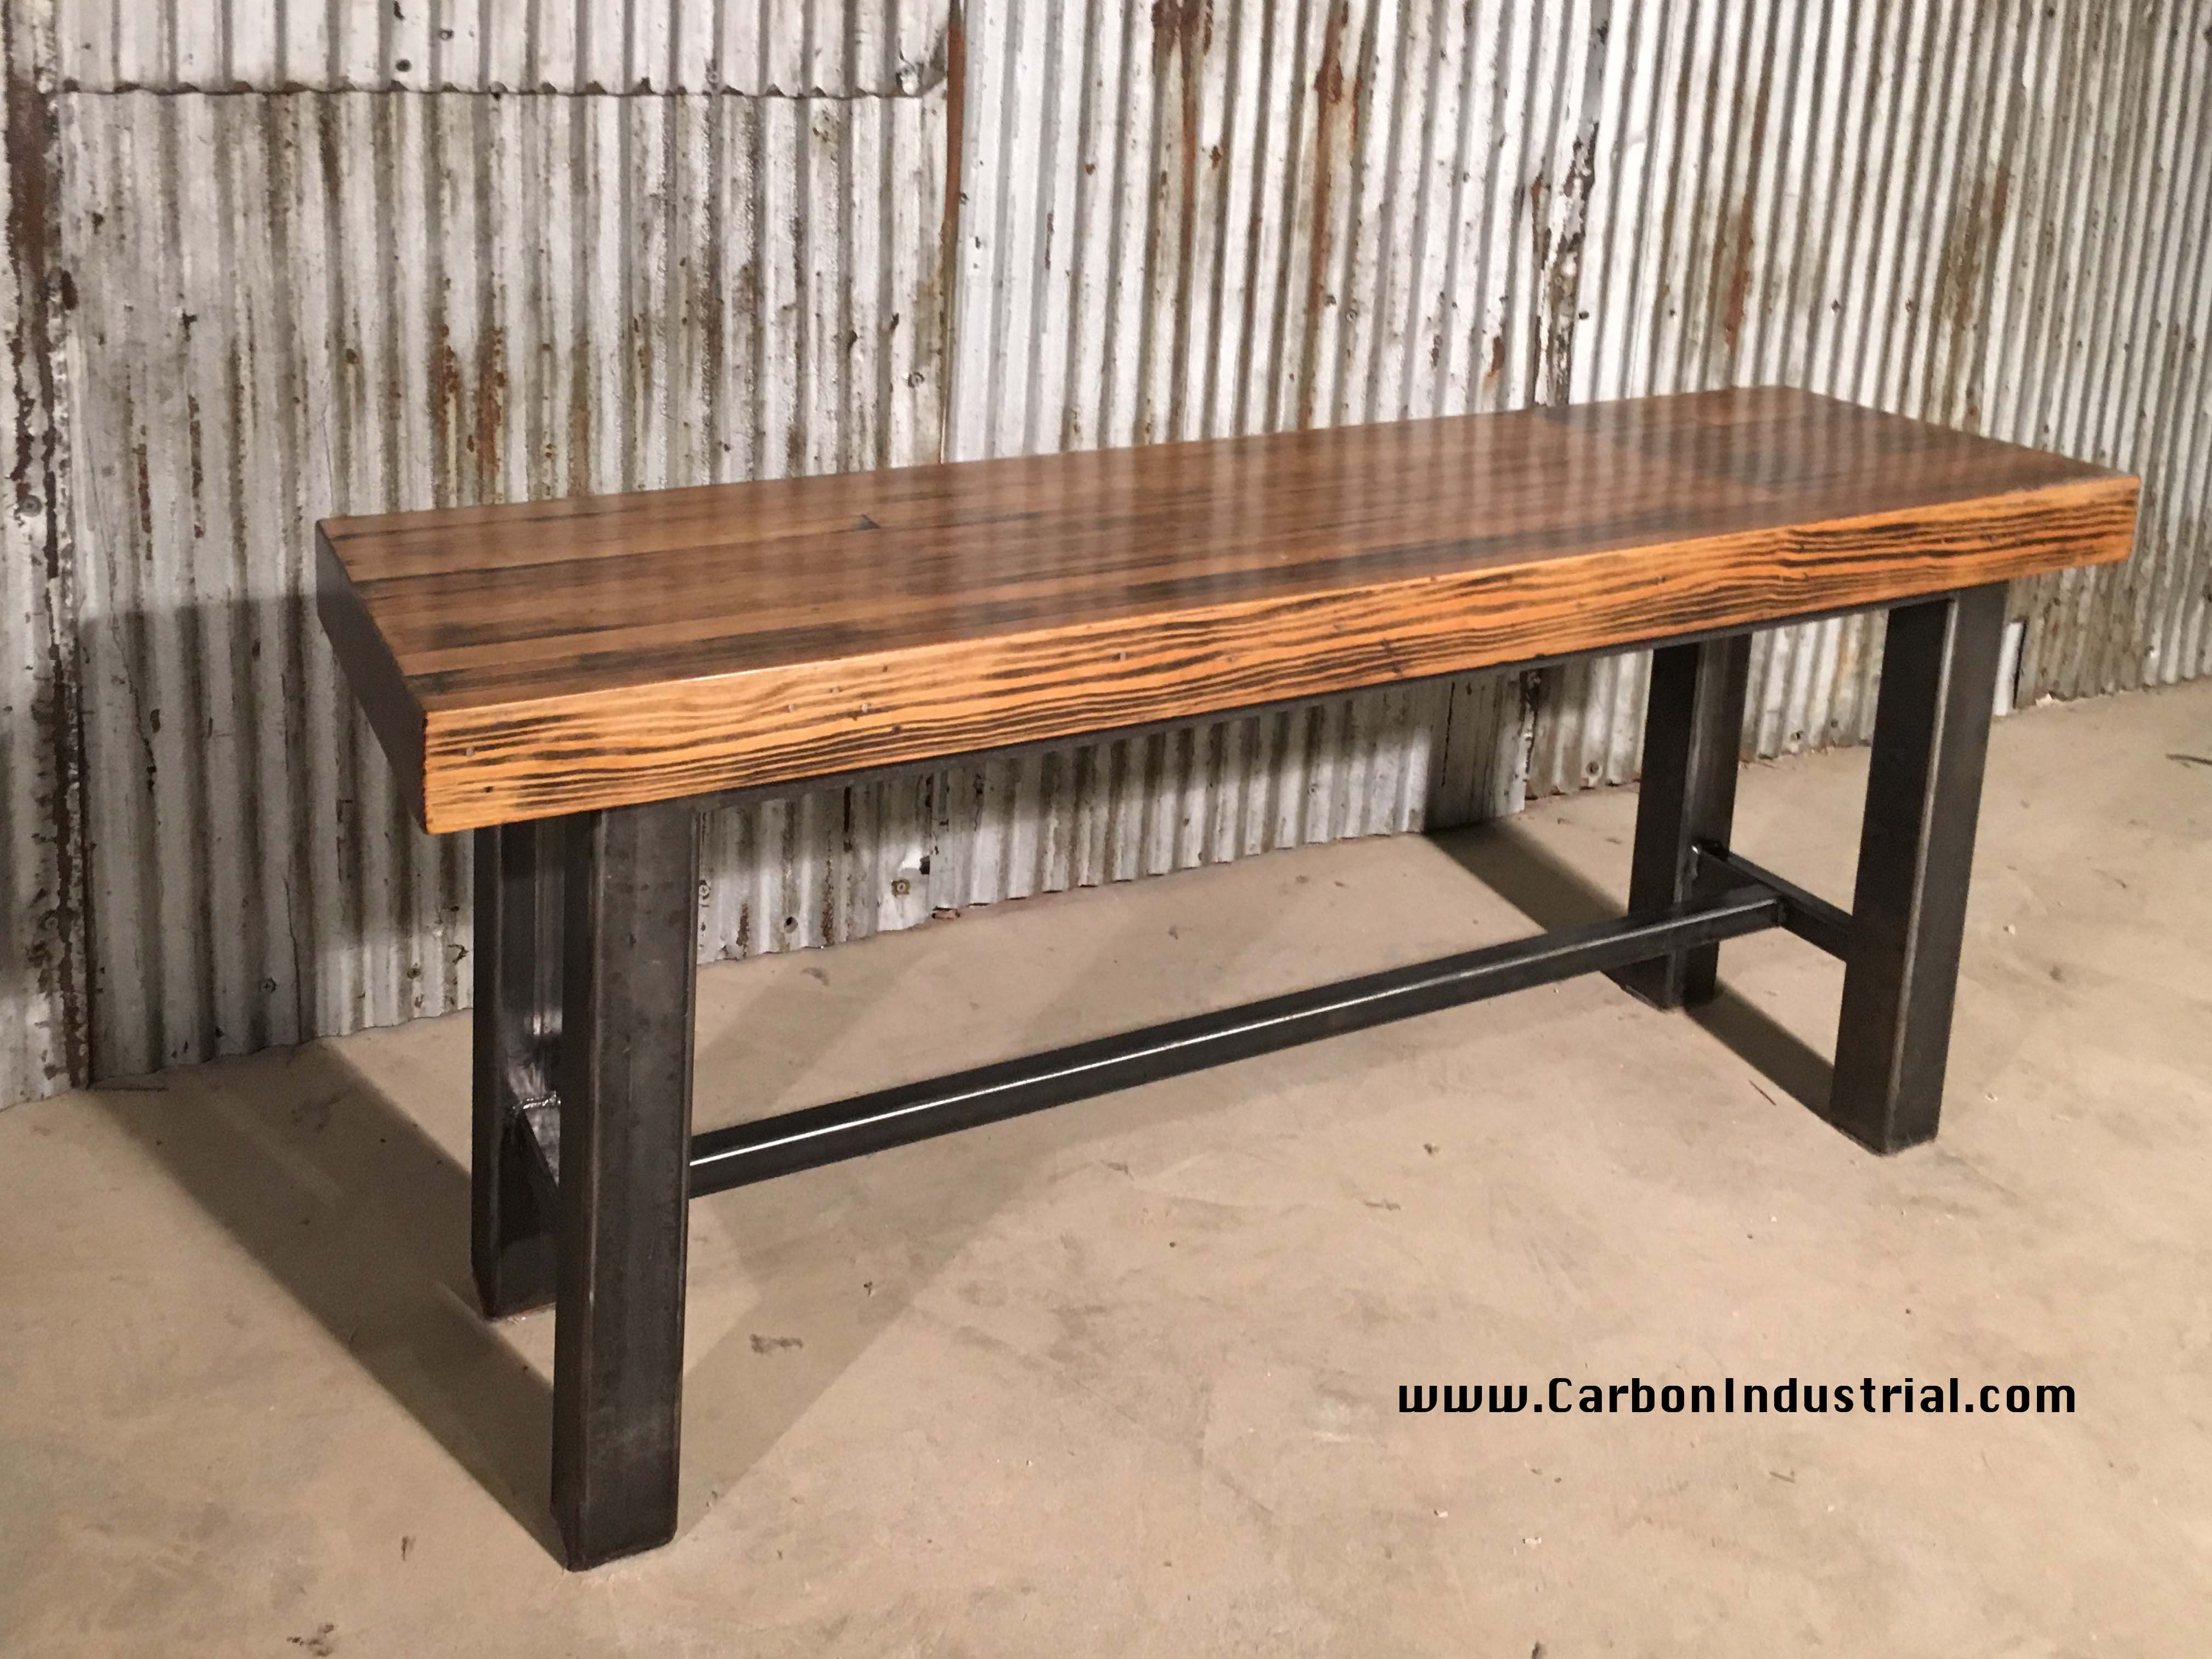 Super Small Custom Made Seating Bench Sitting Height 36 Long Gmtry Best Dining Table And Chair Ideas Images Gmtryco